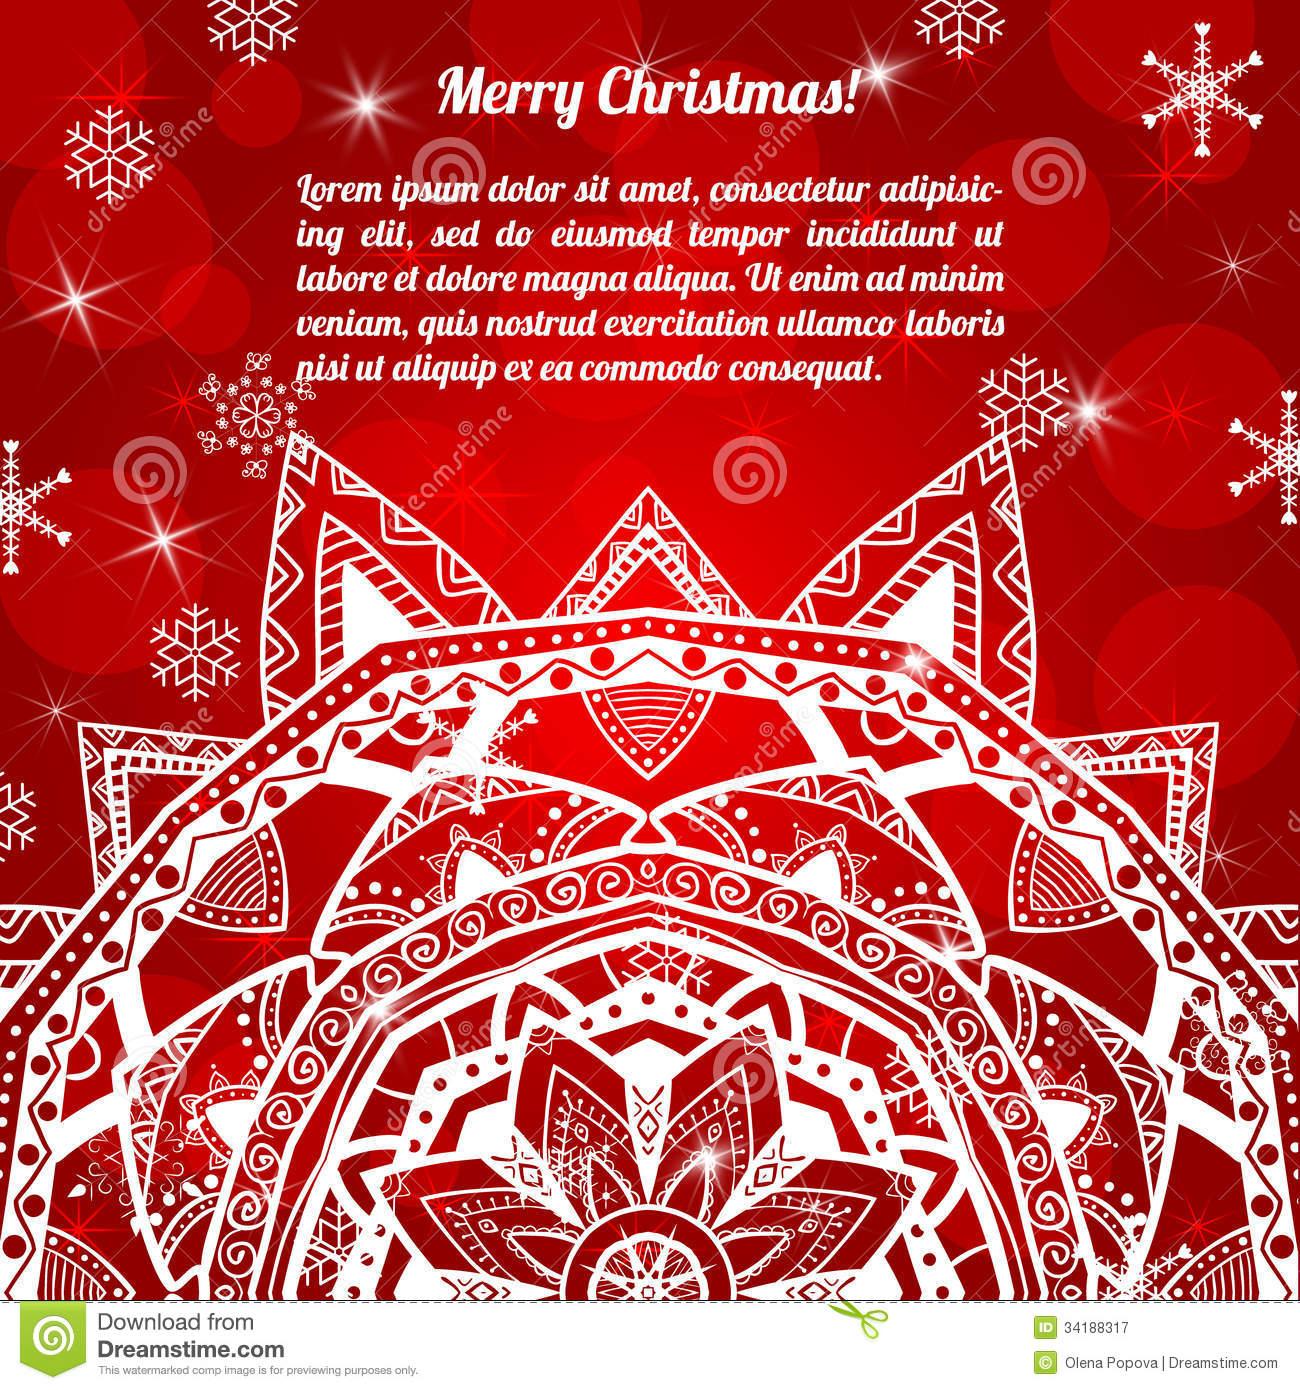 doc christmas invite cards ho ho ho its a party invitation christmas card abstract snowflakes royalty christmas invite cards